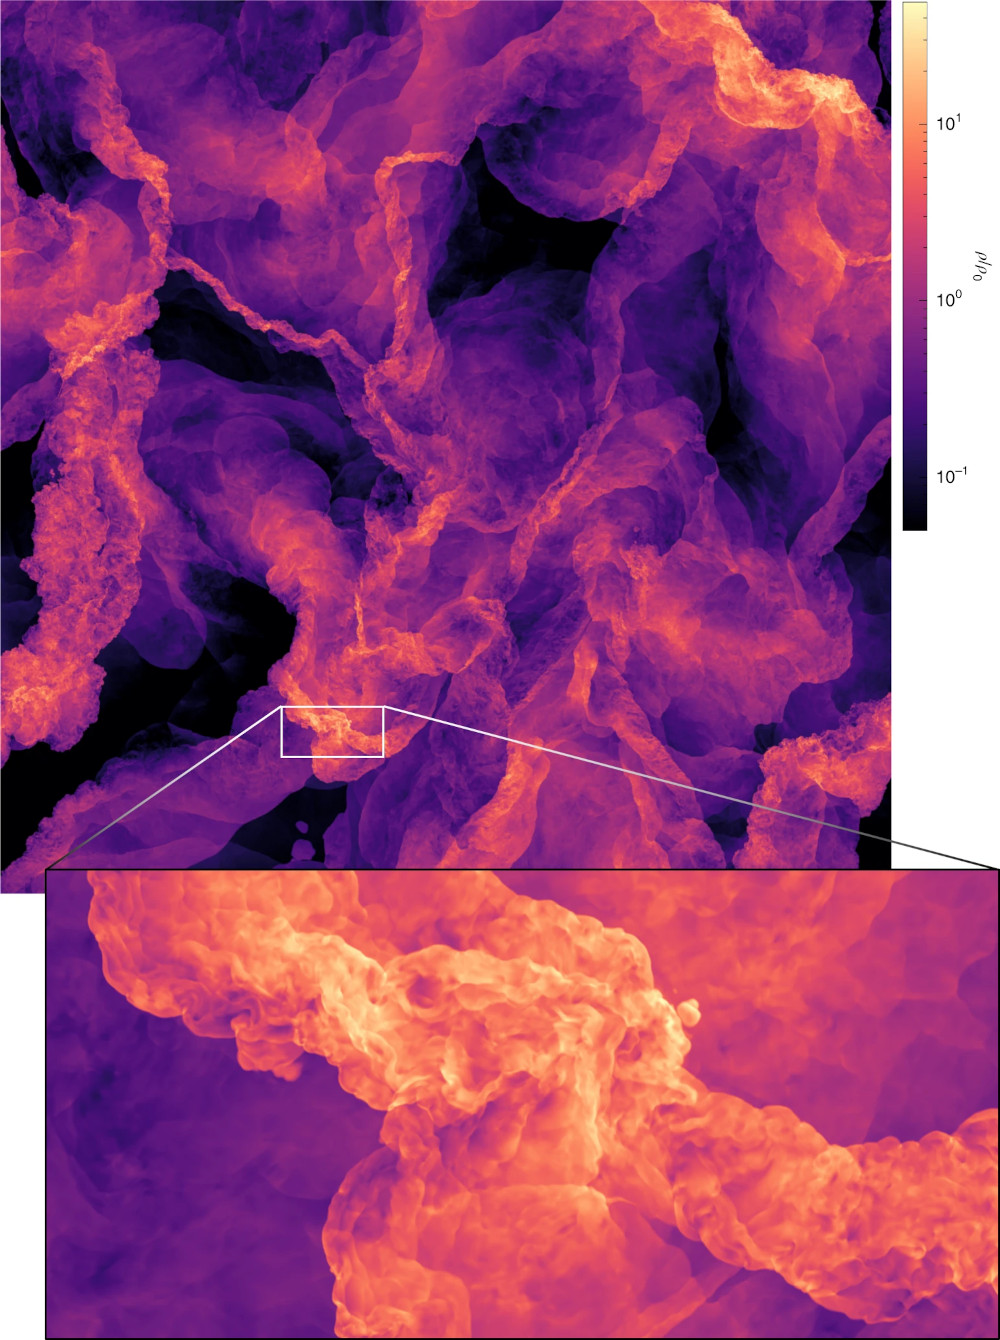 Image of a cloud of gas with second image zooming in on a small part in the centre